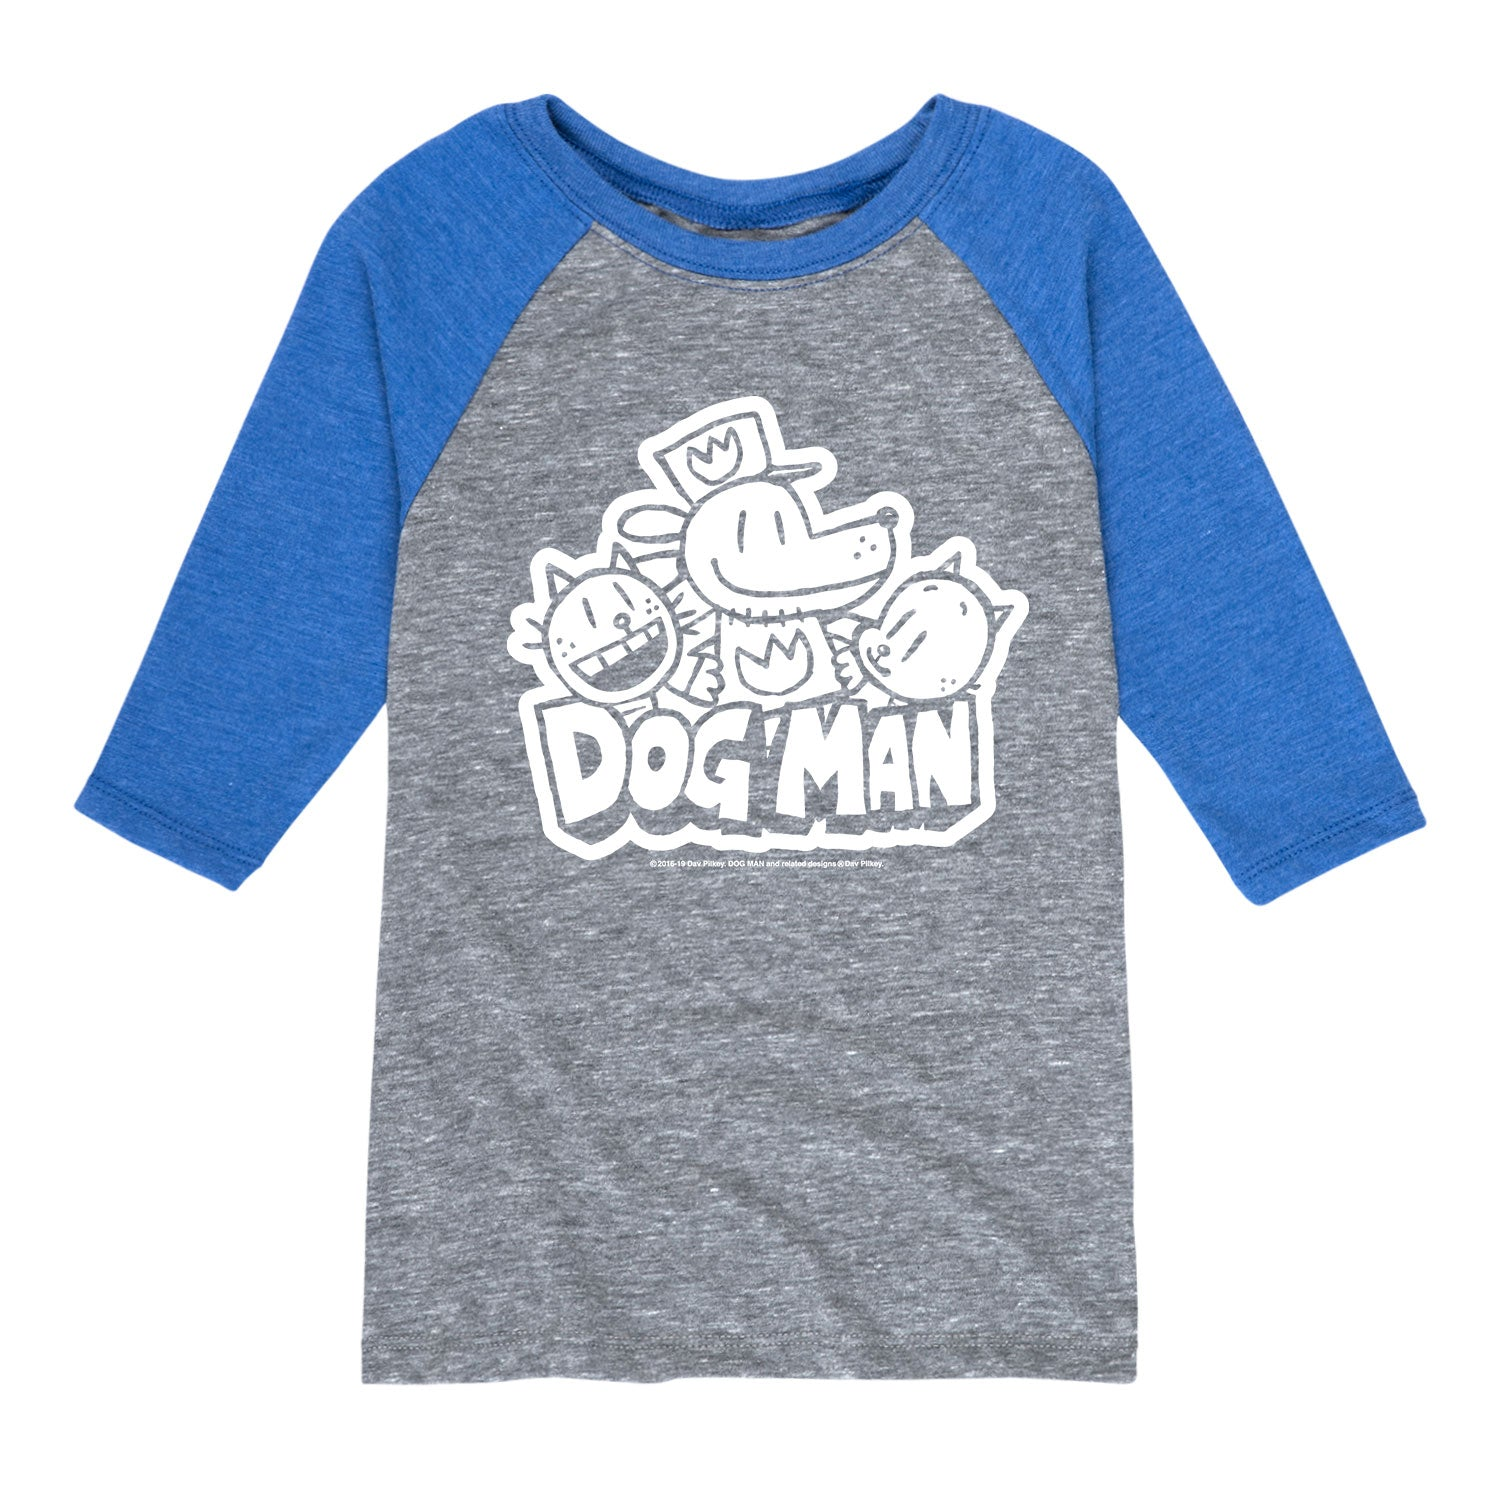 Dogman Black and White - Youth & Toddler Raglan